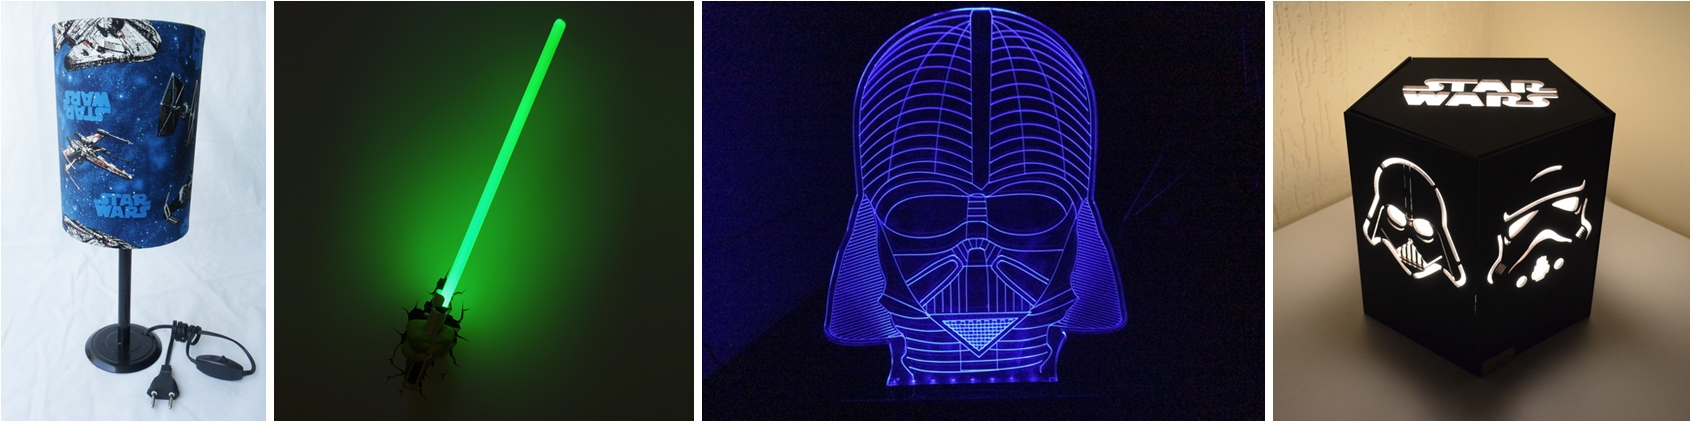 Ventilador de teto Spirit - Blog myspirit - Luminárias - Star Wars